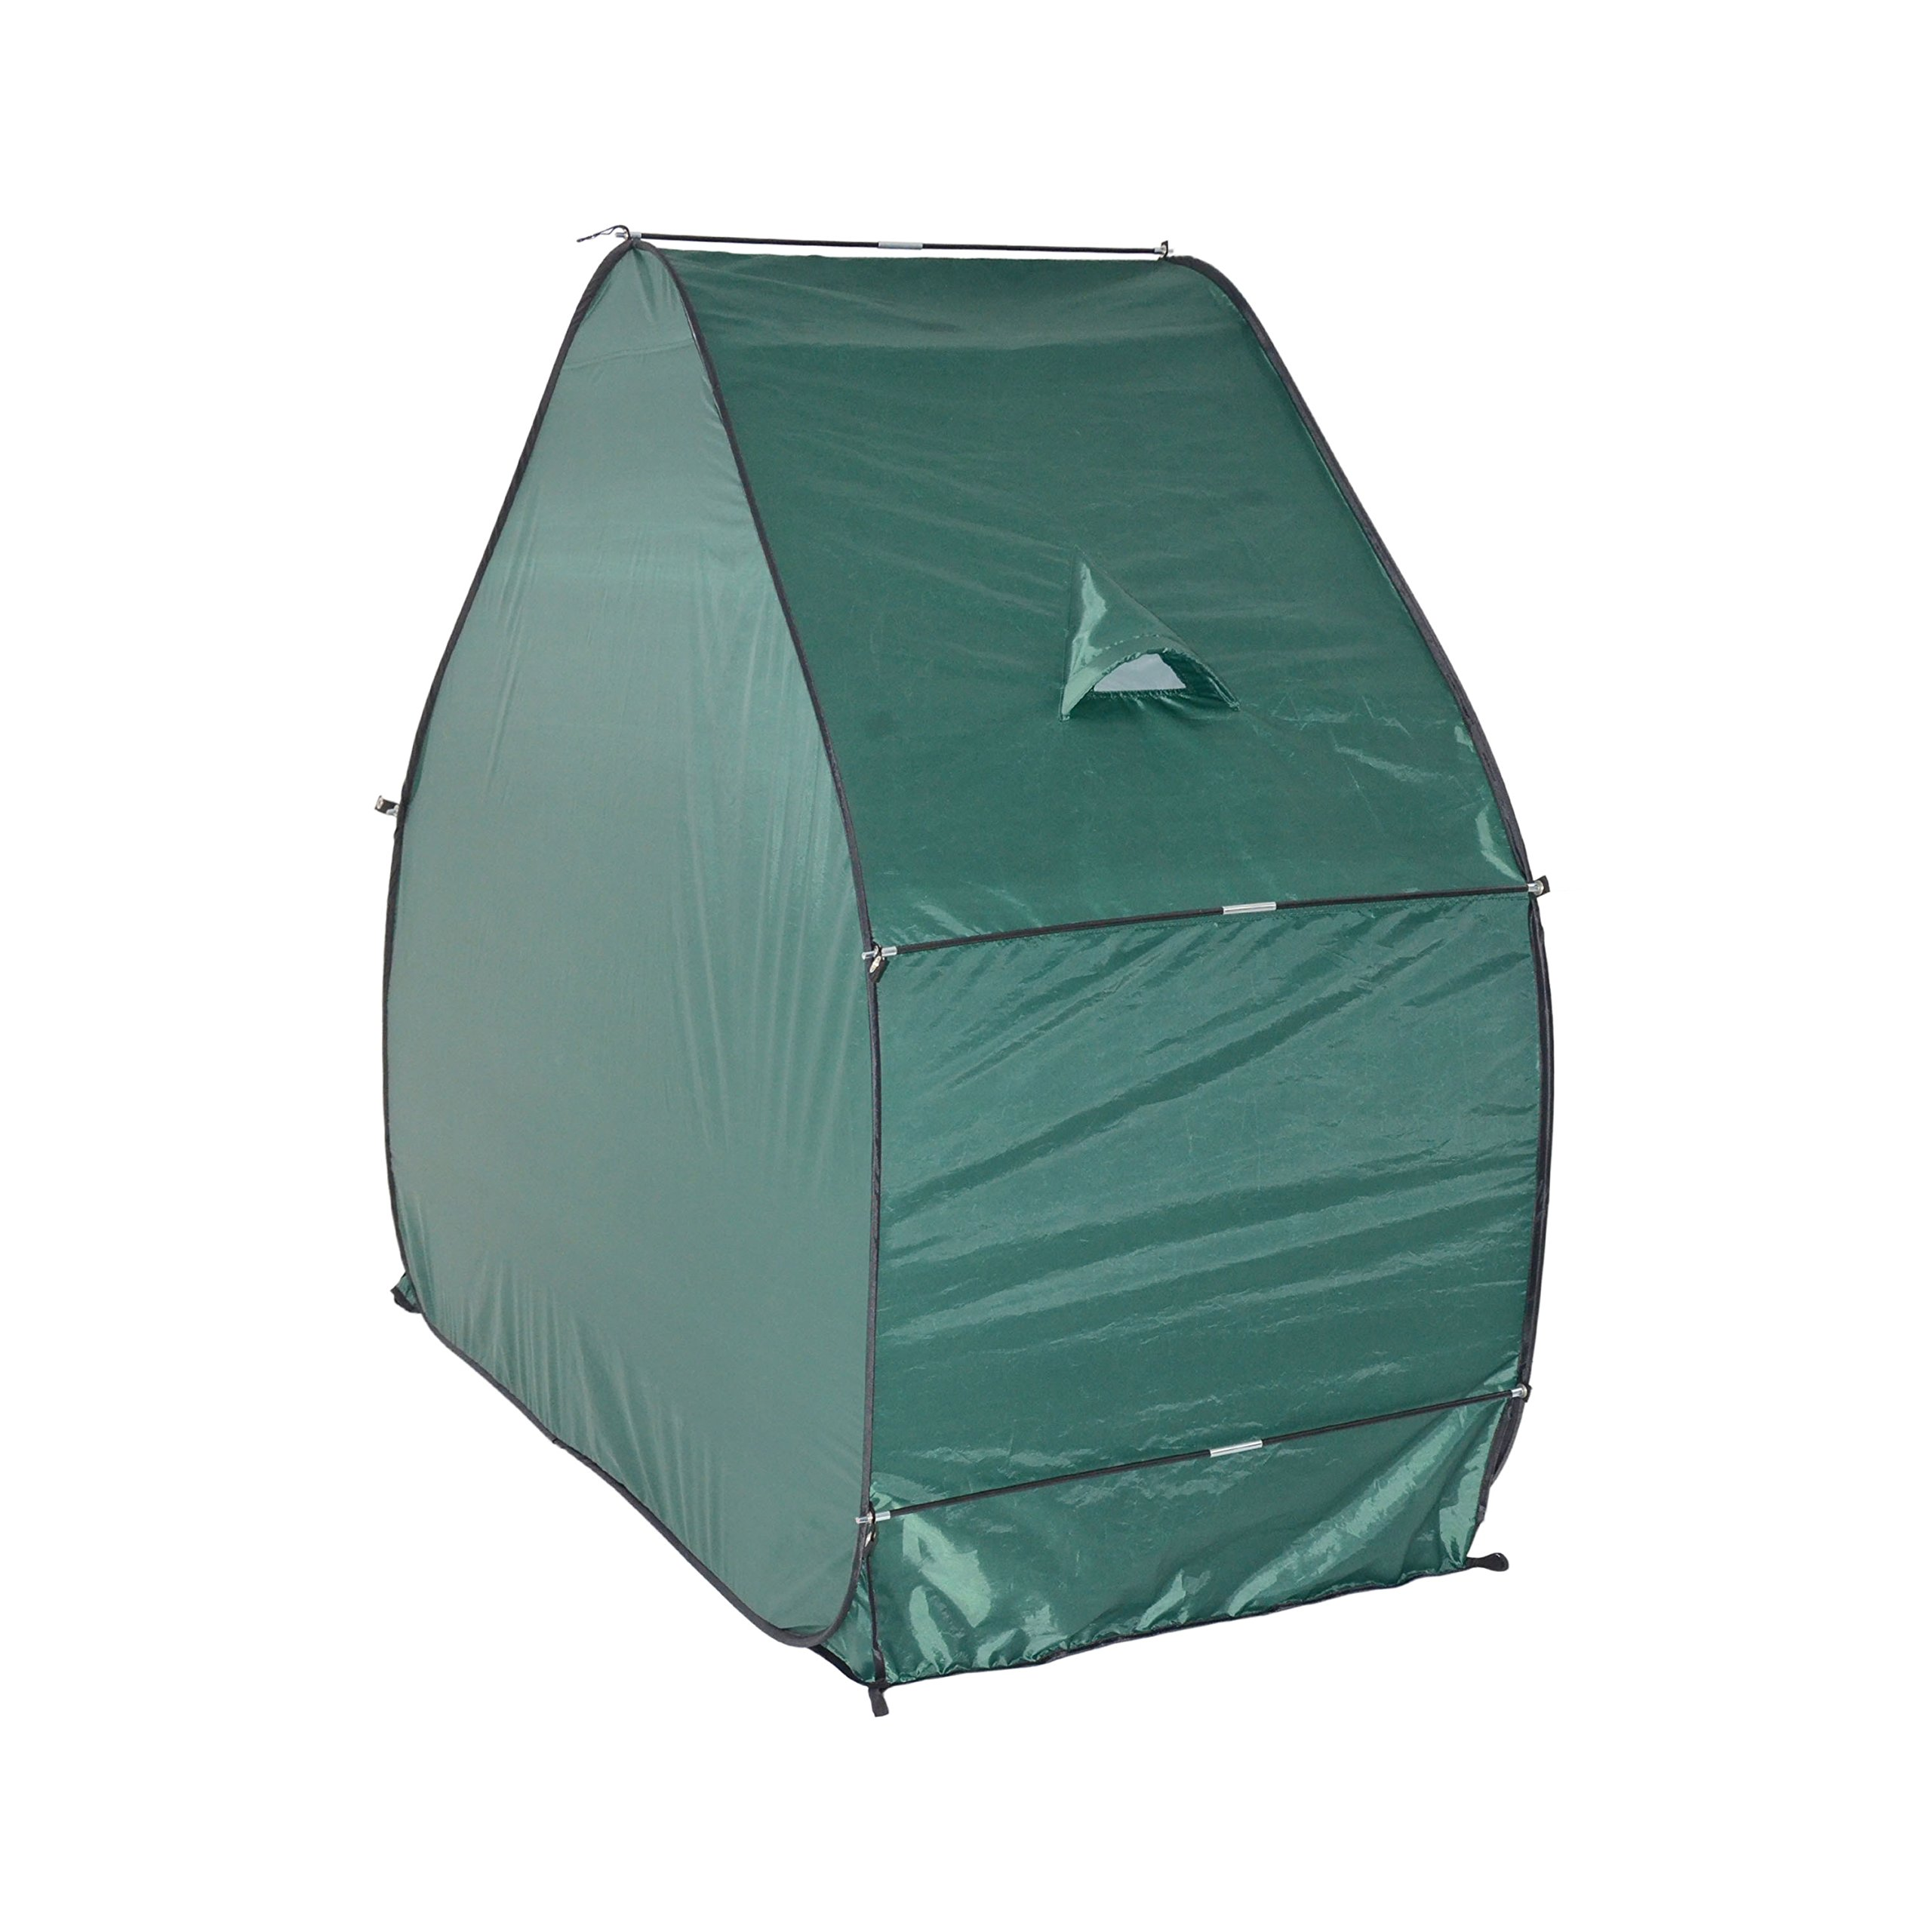 ALEKO BSP79GR Pop-Up Weather Resistant Bike Storage Tent, Green